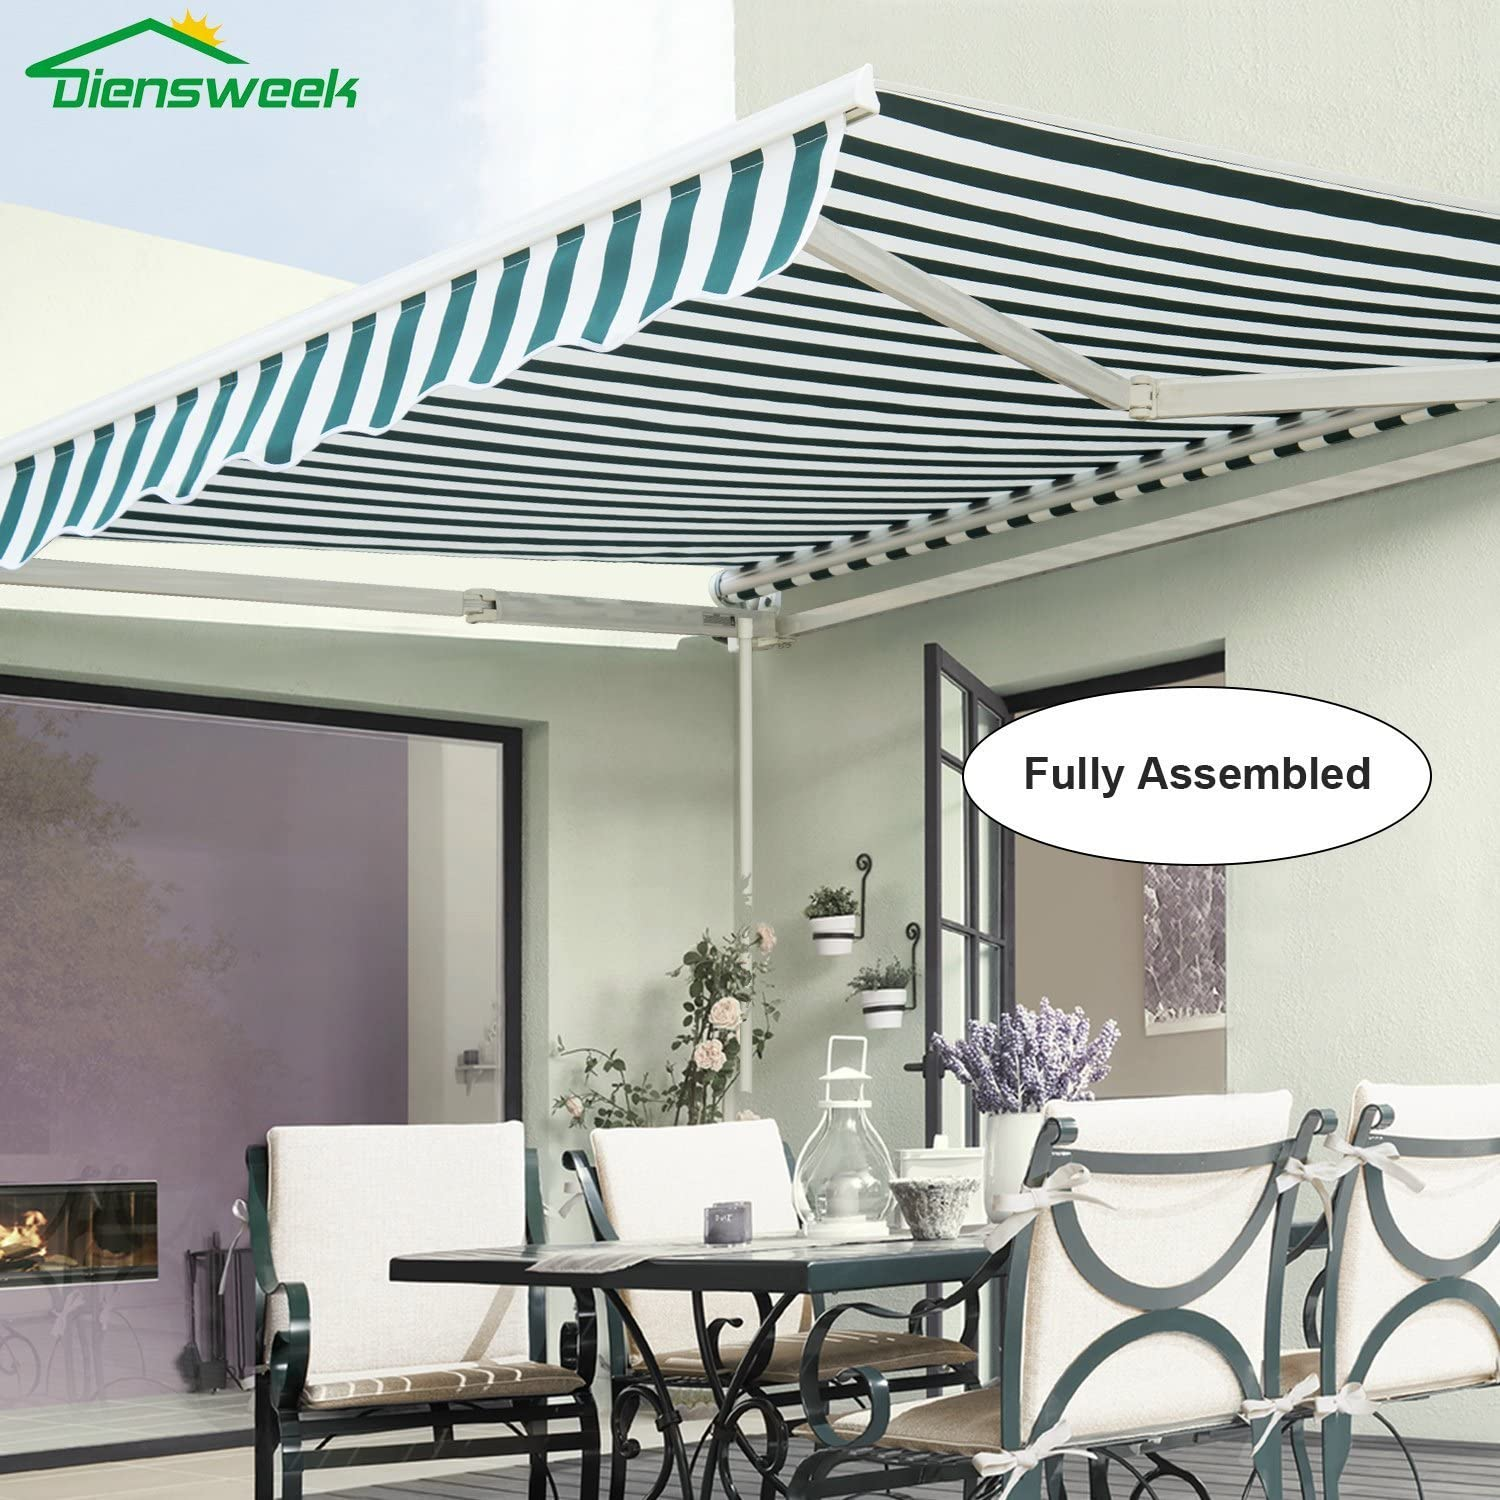 Diensweek 8'x7' Patio Awning Retractable Fully Assembled Manual Commercial Grade, Quality 100% 280G Polyester Window Door Sunshade Shelter,Deck Canopy Balcony P100 Series (8'x7', Green/White Stripes)